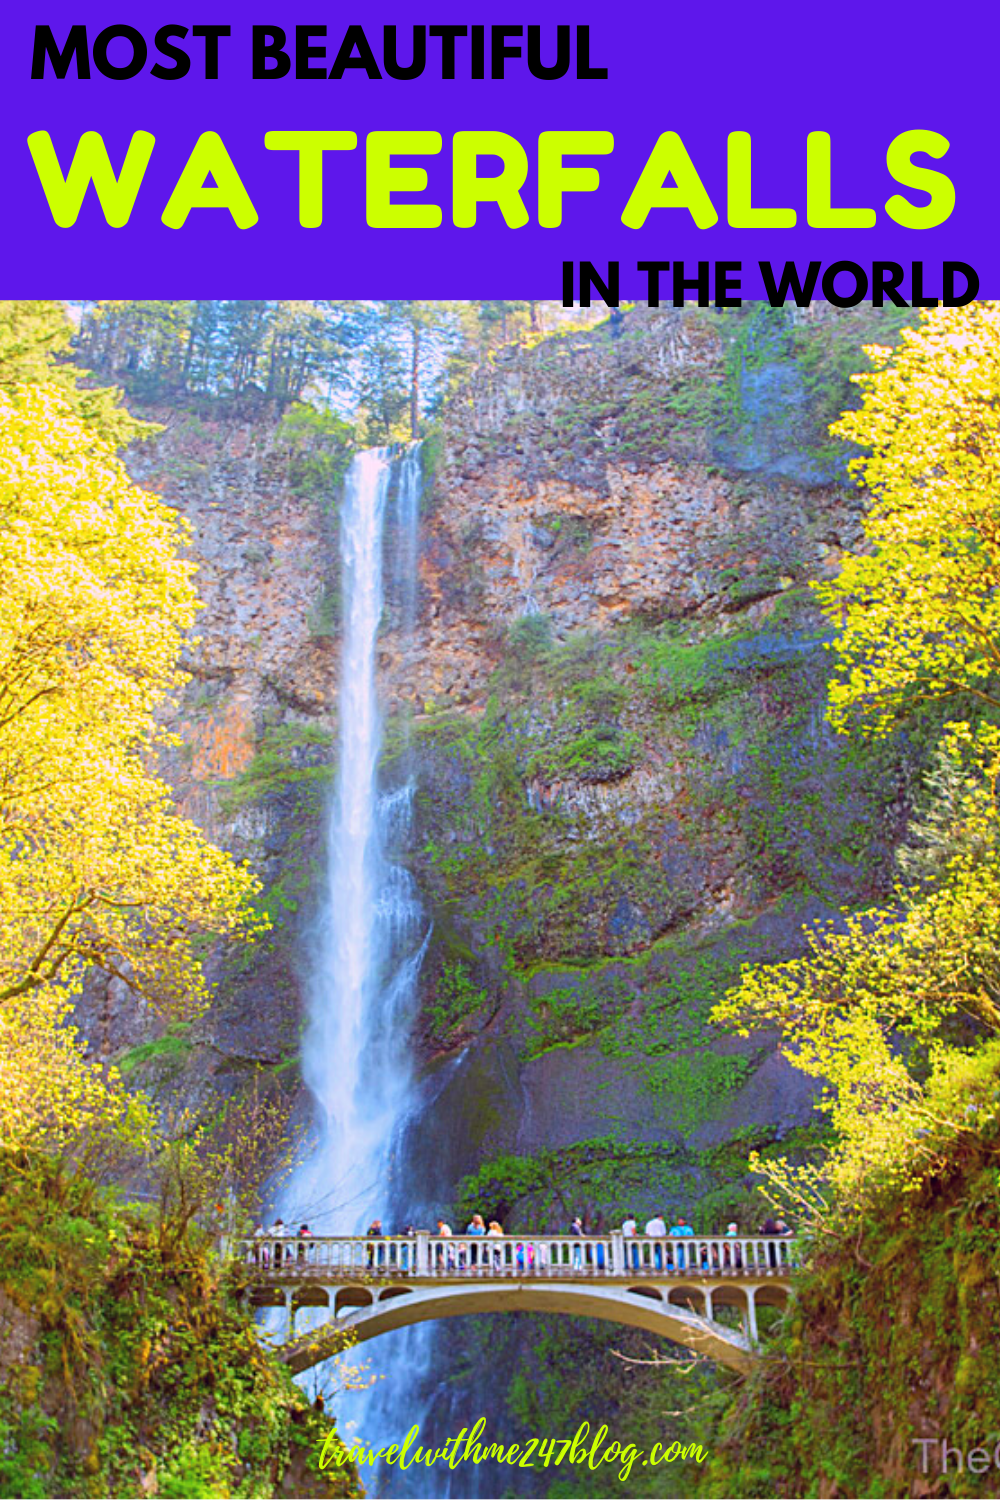 Most Beautiful Waterfalls In The World Waterfalls Pictures Travel With Me 24 X 7 Beautiful Waterfalls Waterfall Pictures Waterfall